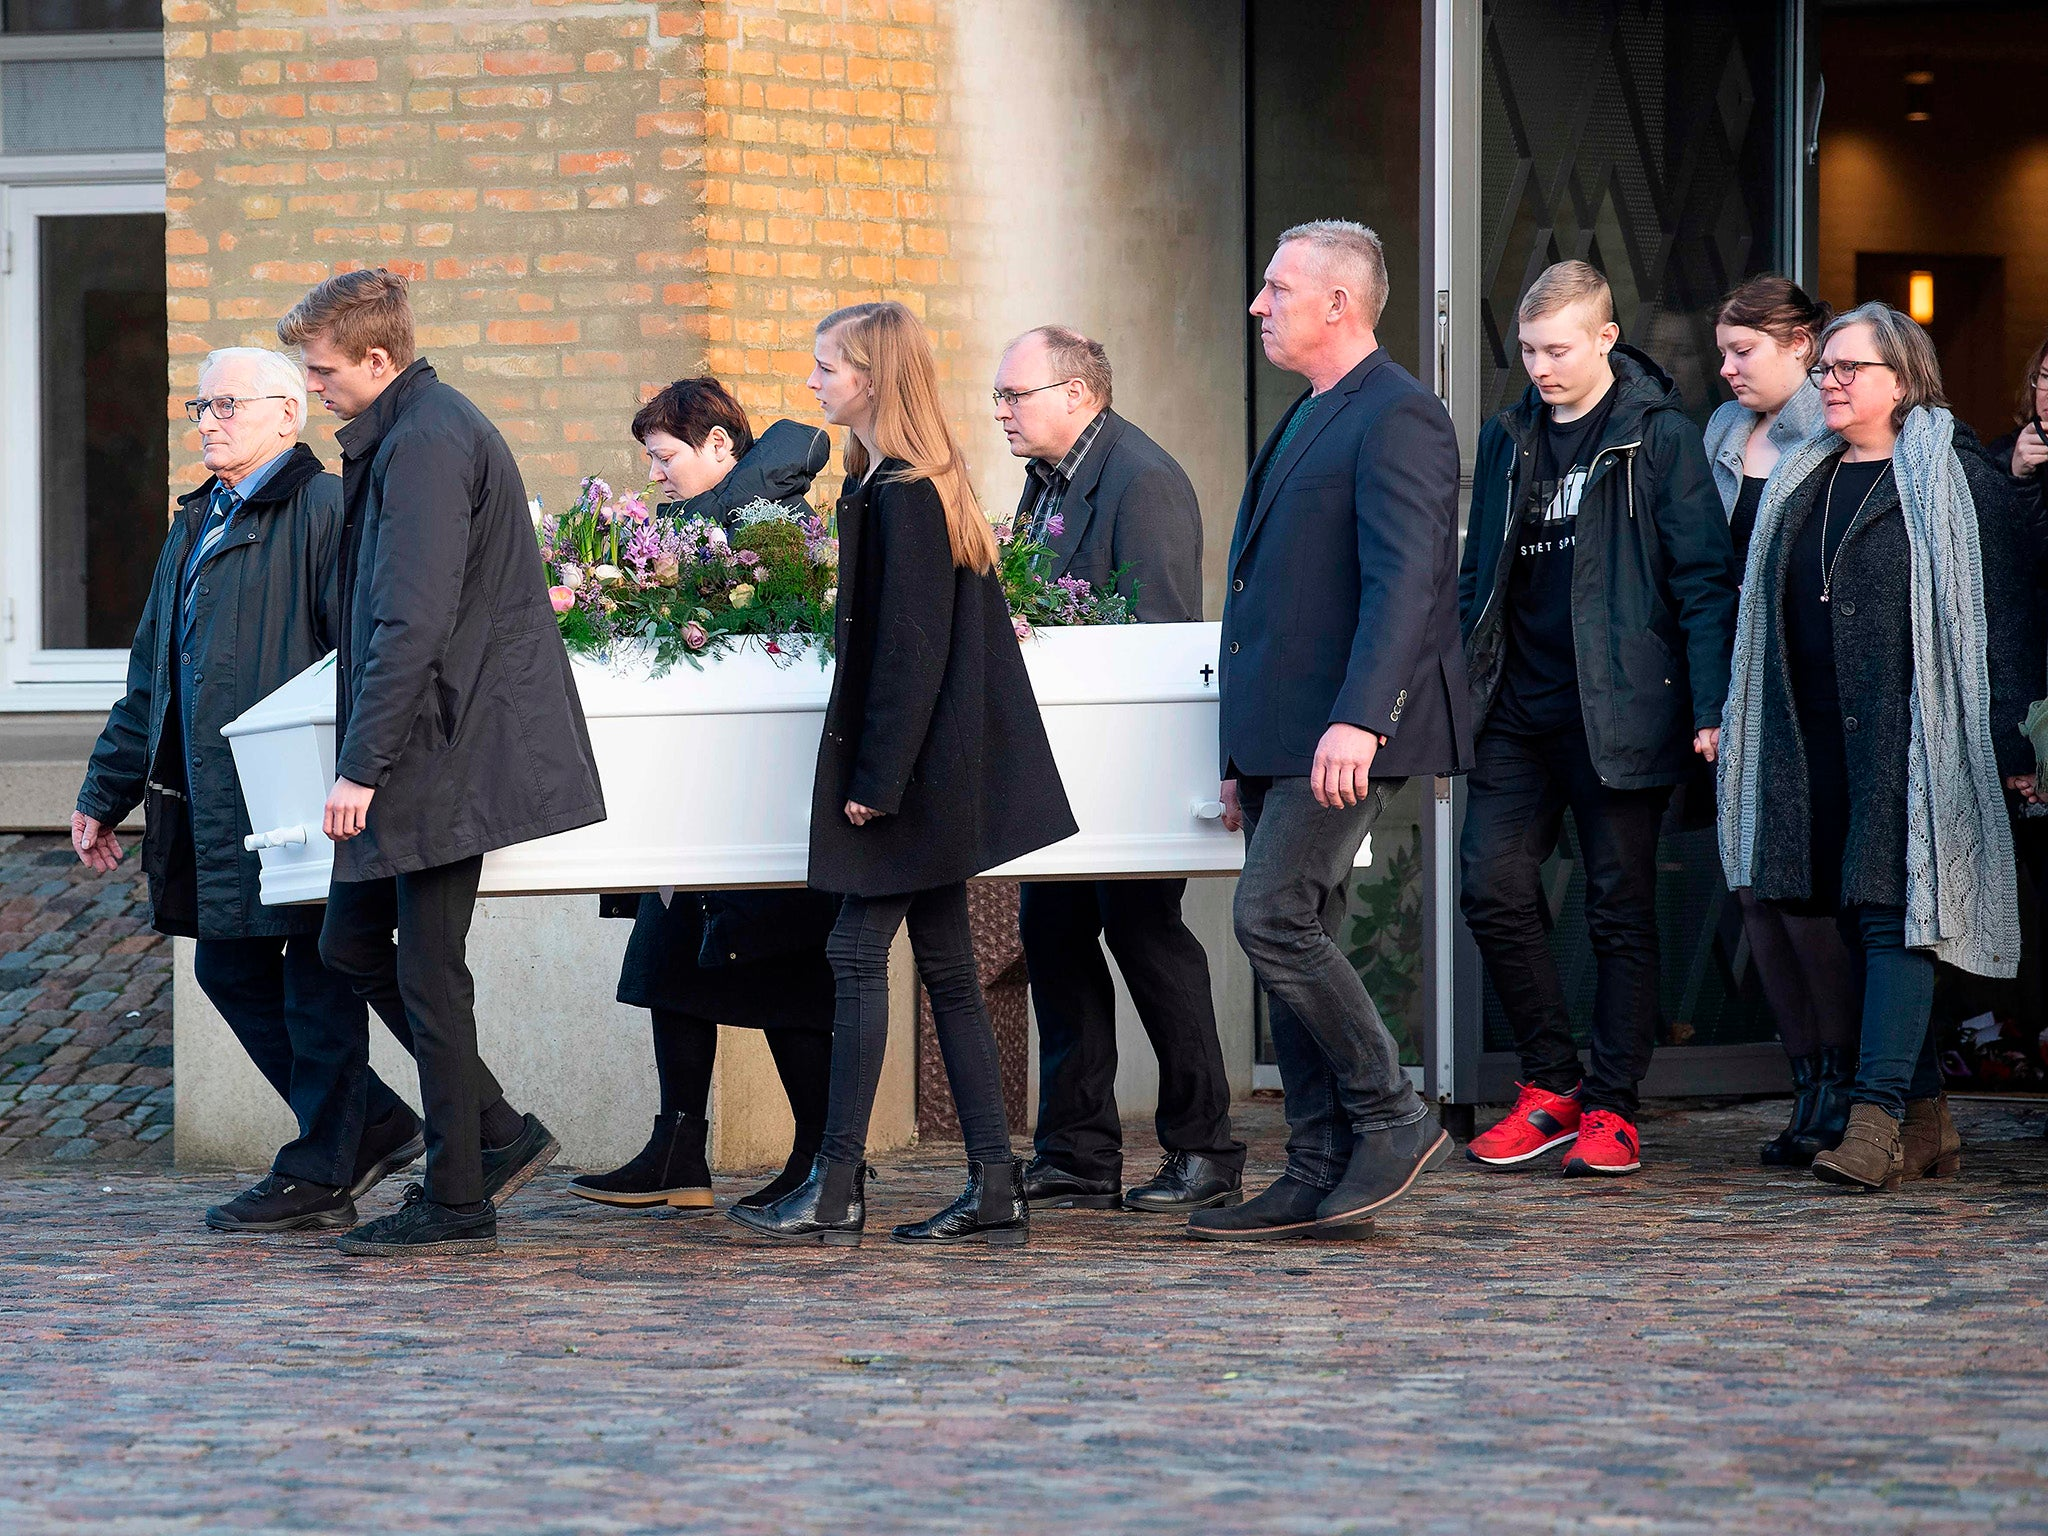 Danish PM attends funeral for tourist murdered in Morocco | The